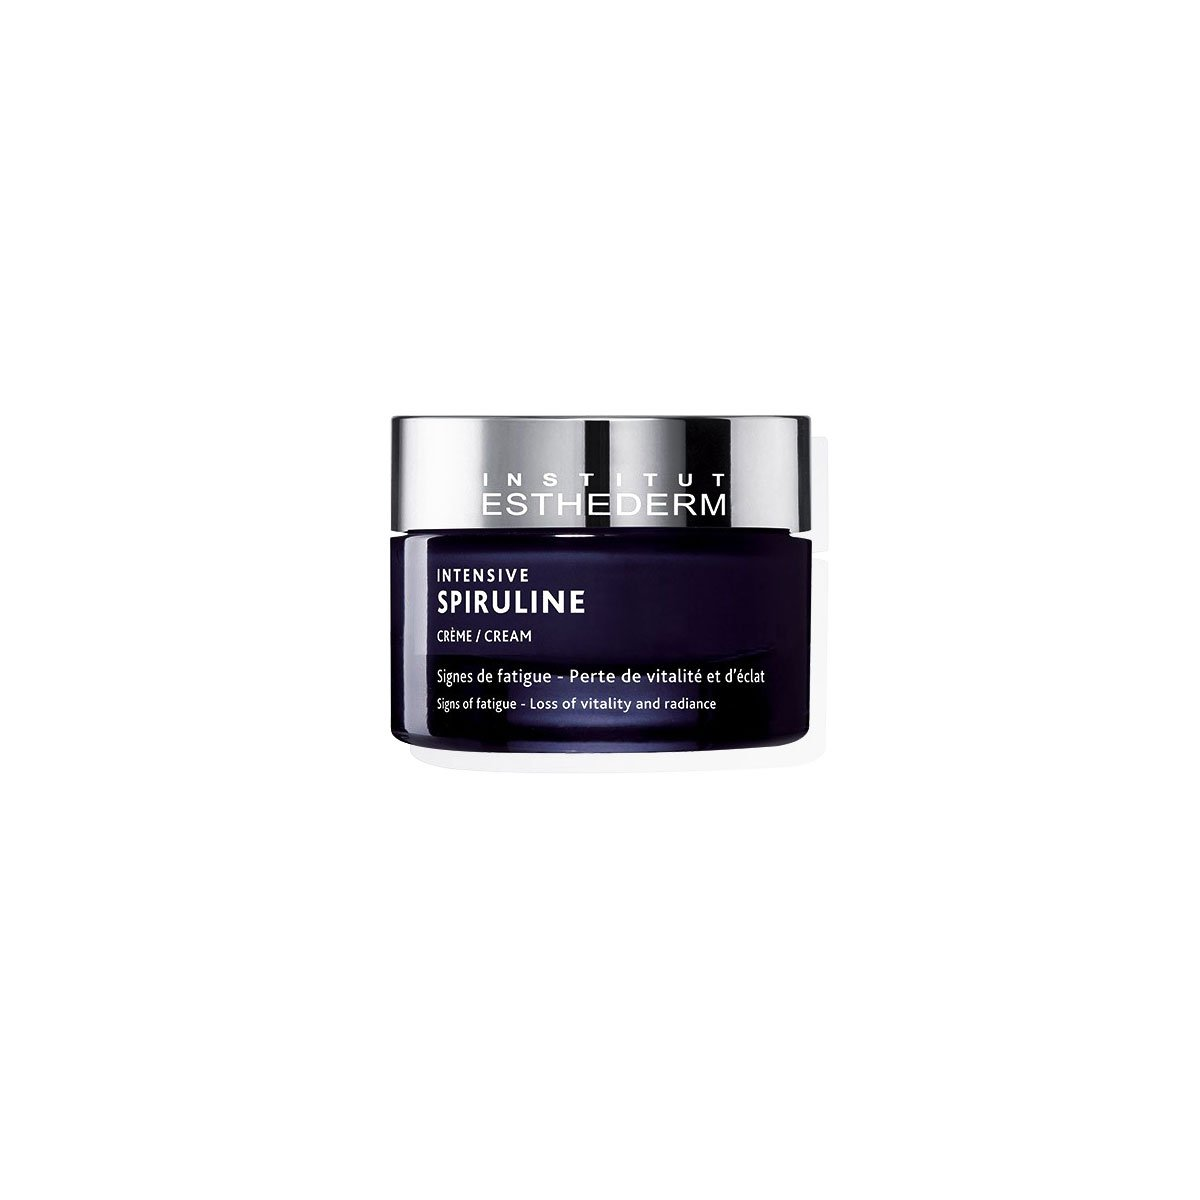 Institut Esthederm Intensive Spiruline Cream 50ml [並行輸入品] B07D9182ZV